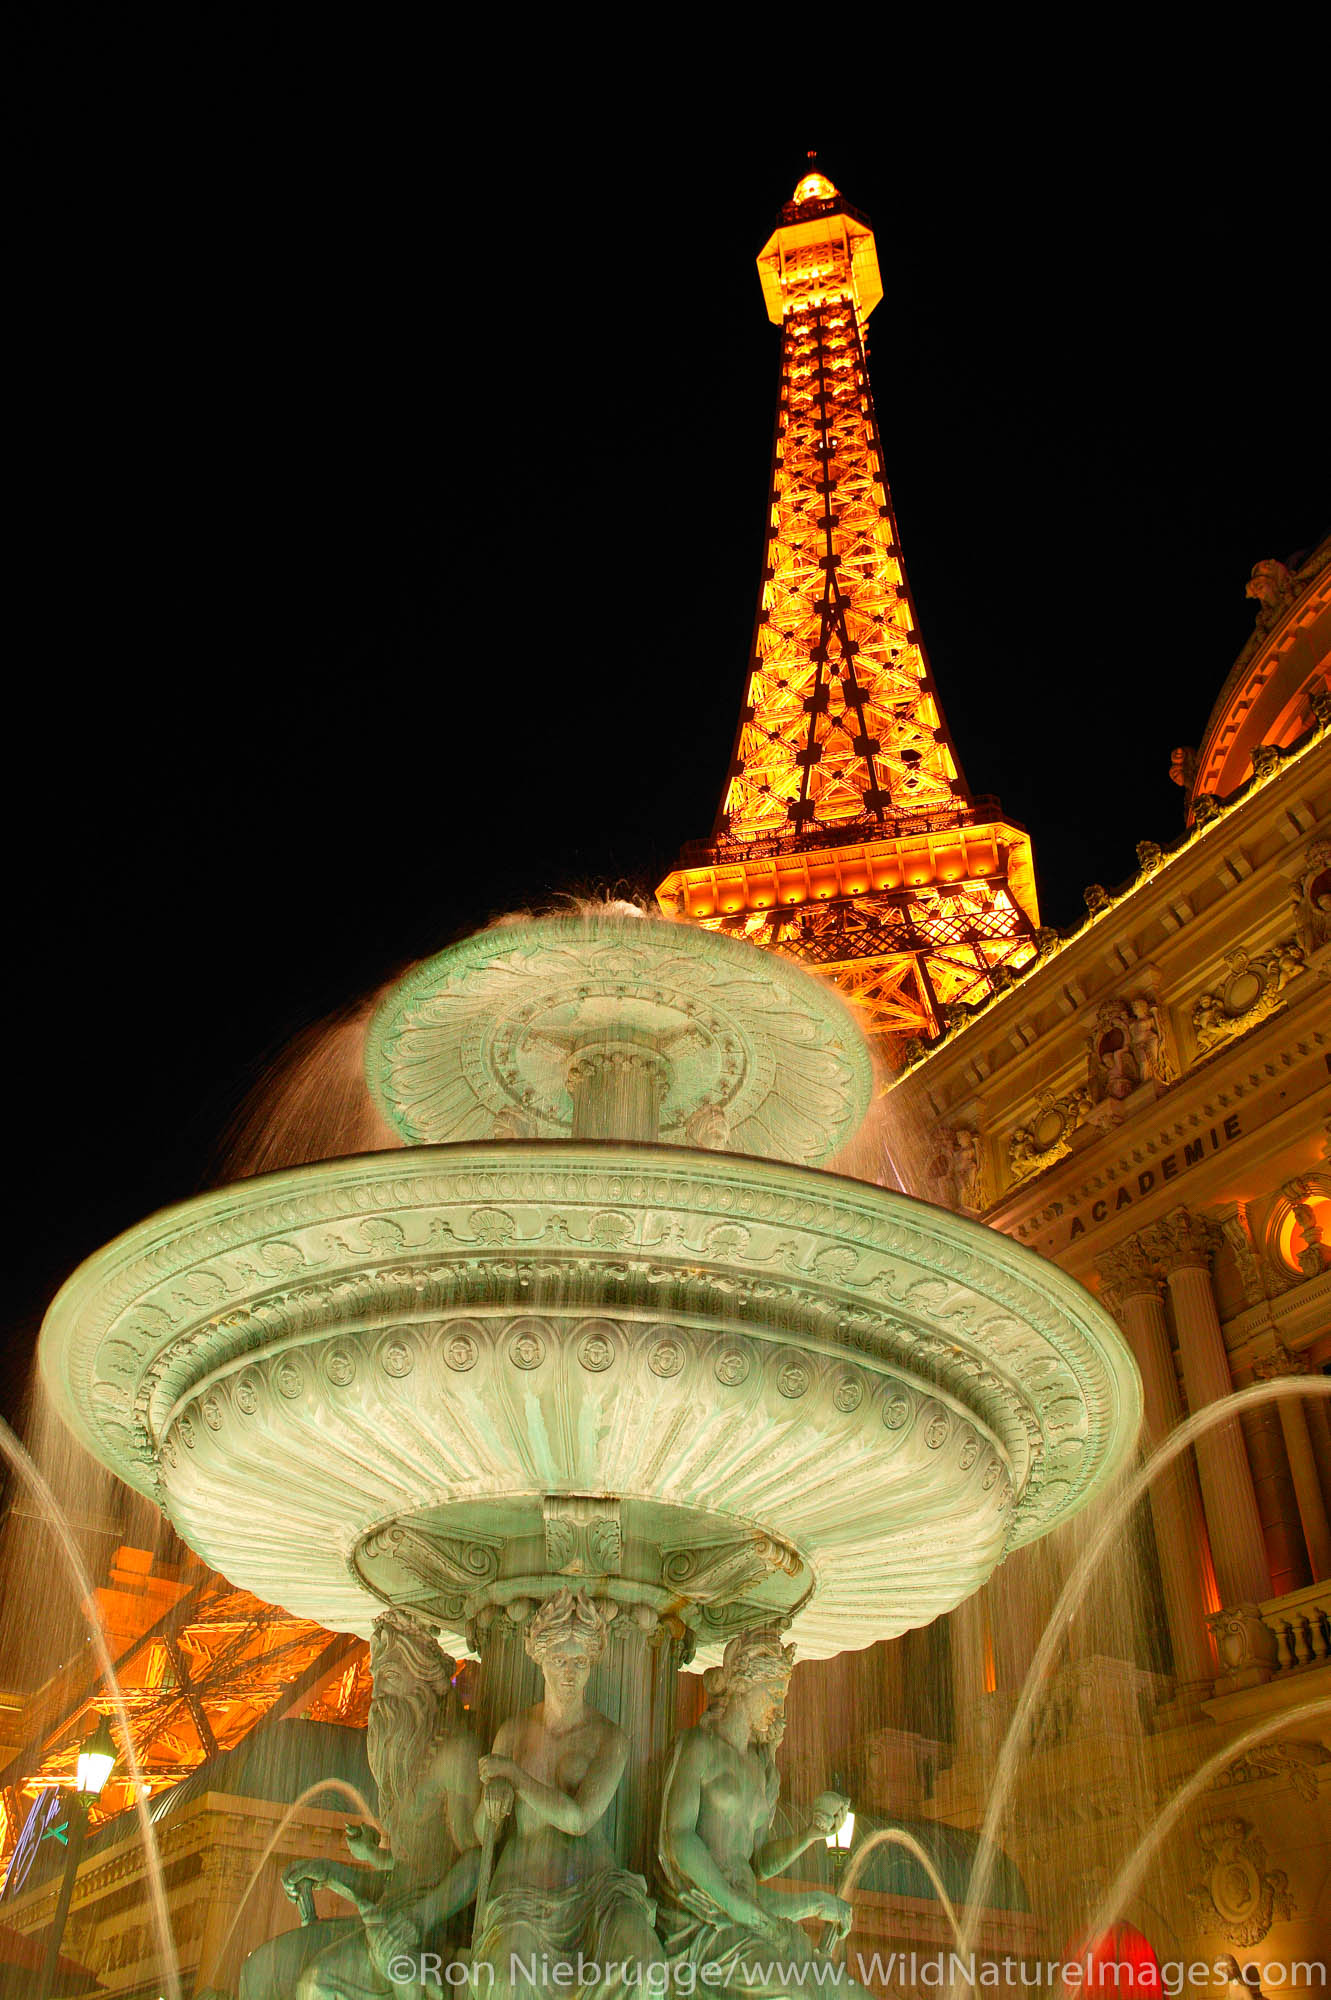 The Eiffel Tower and Arc de Triomphe at the Paris resort hotel and casino in Las Vegas, Nevada.